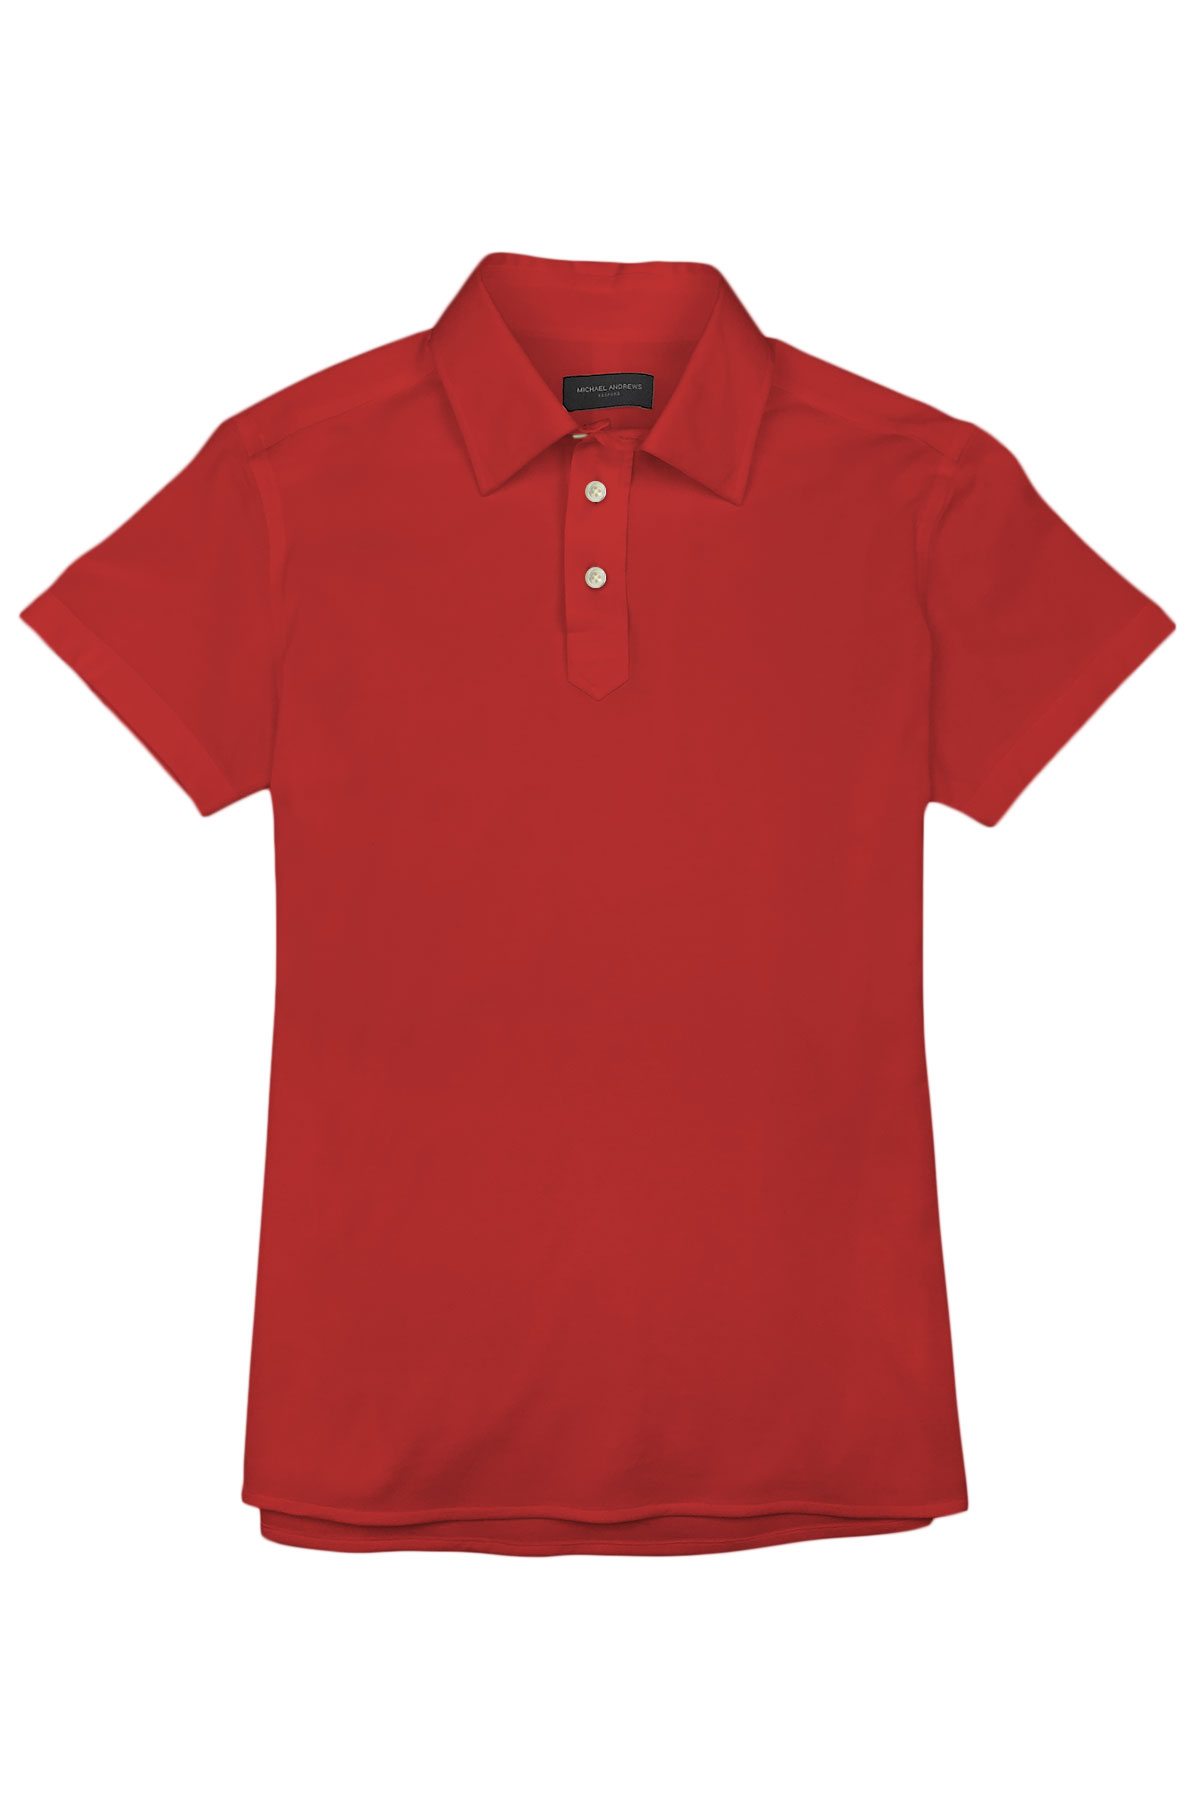 Bright Red Pique Polo Shirt